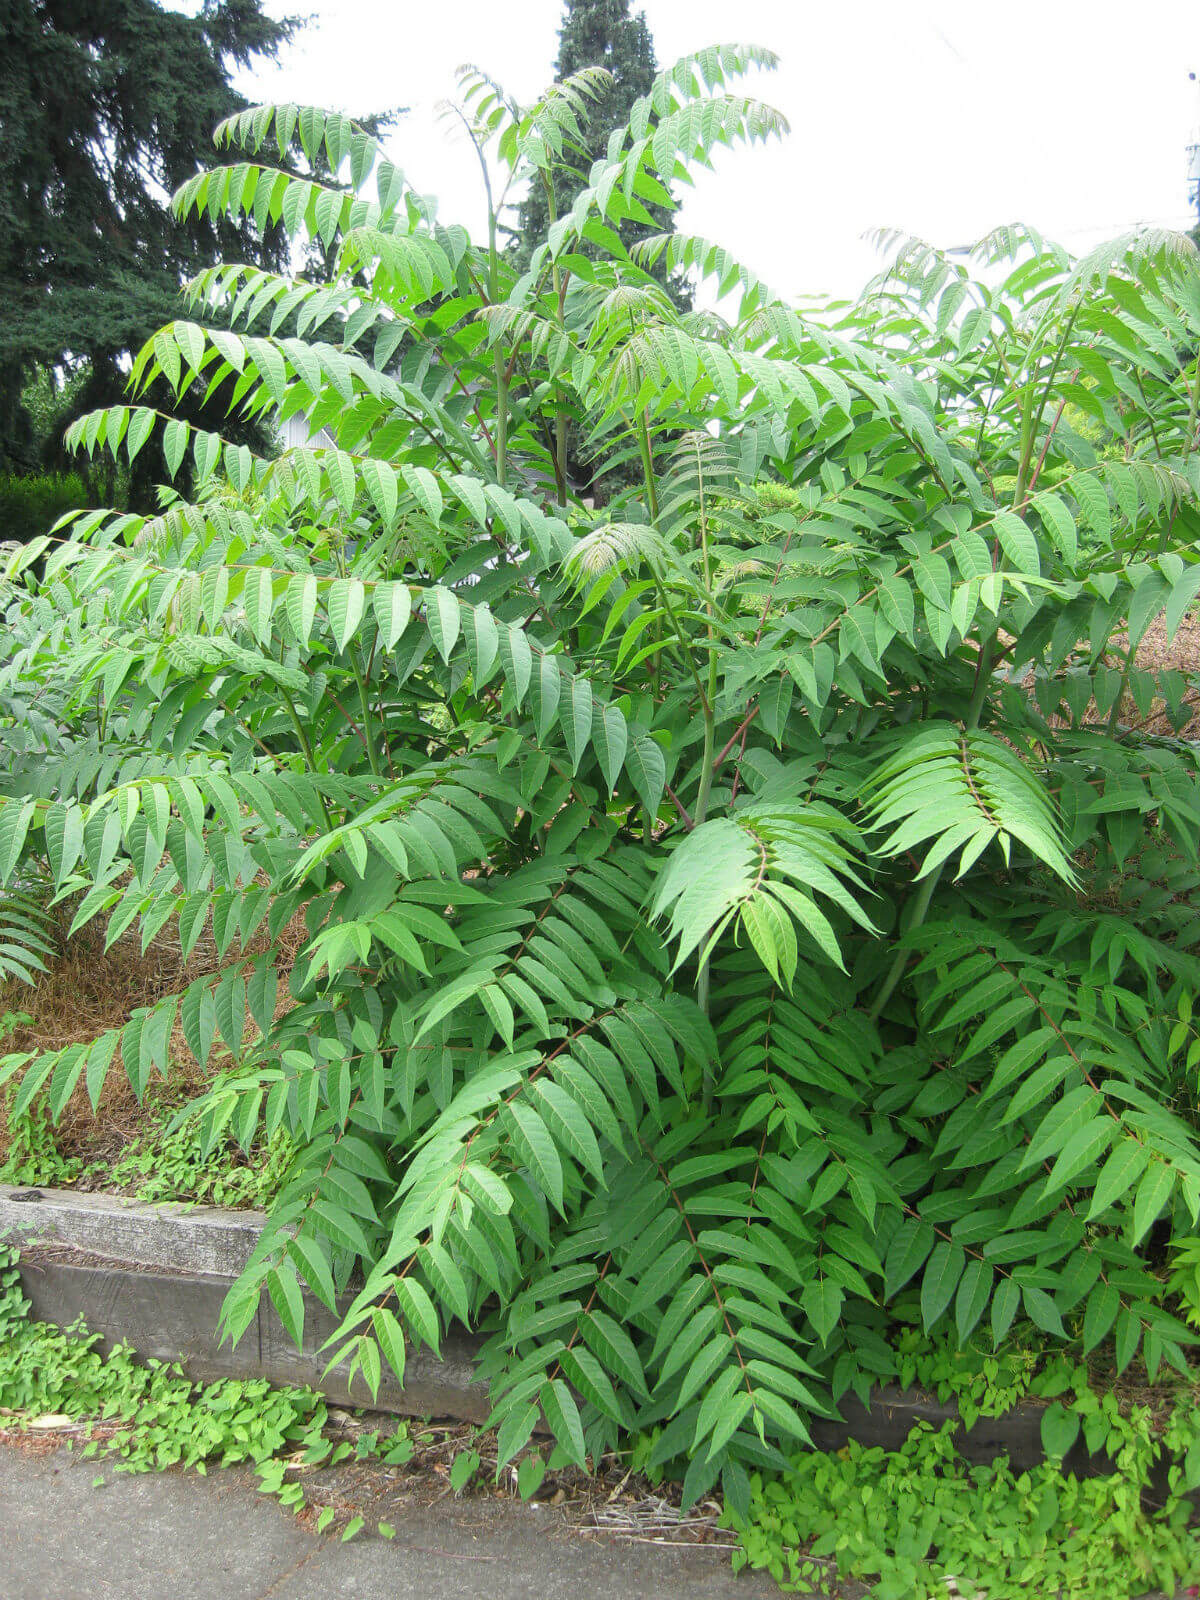 Tree-of-Heaven(Ailanthus altissima) | Top 10 Exotic Invasive Trees in theU.S - FarmFoodFamily.com